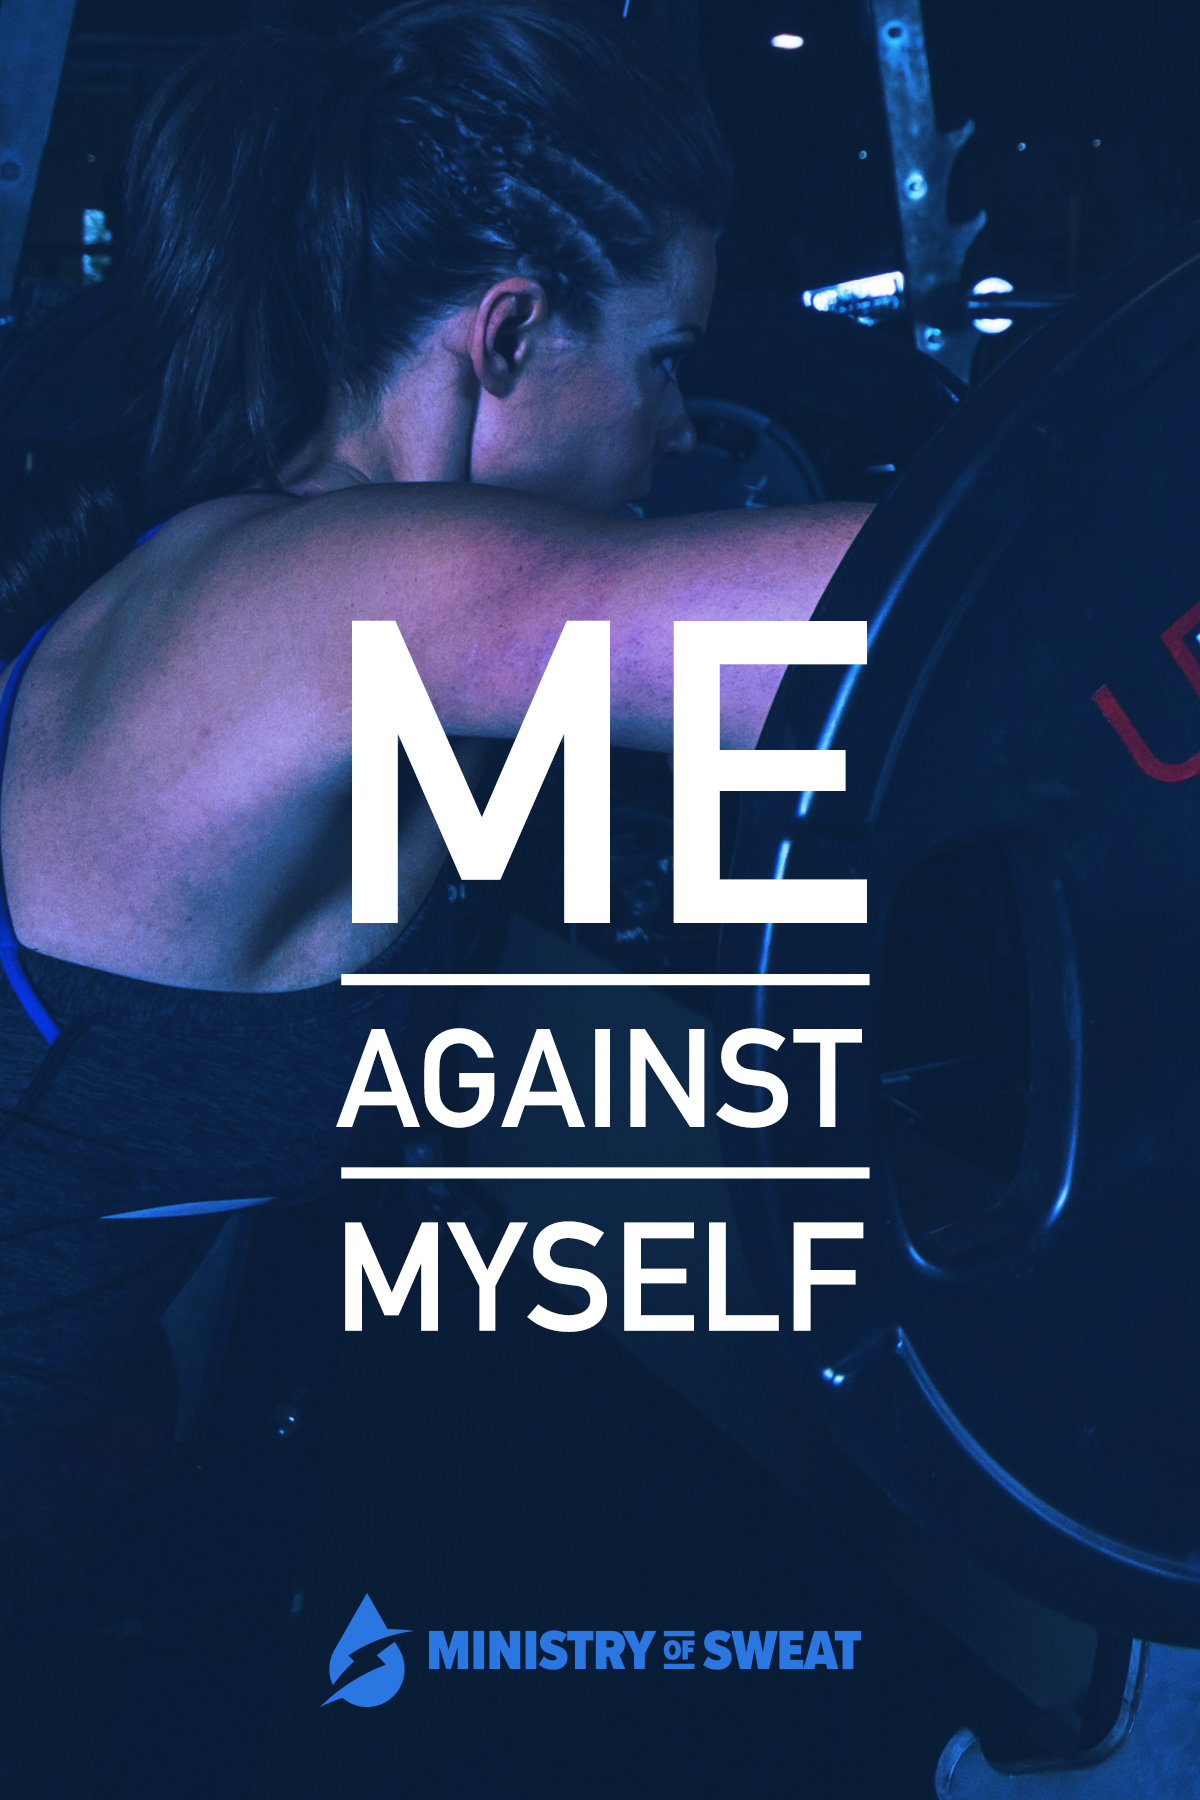 Daily Fitness Motivation Me Against Myself Fitness Workout Gym Crossfit Fitnessmotivation Fitness Motivation Pictures Workout Humor Training Motivation